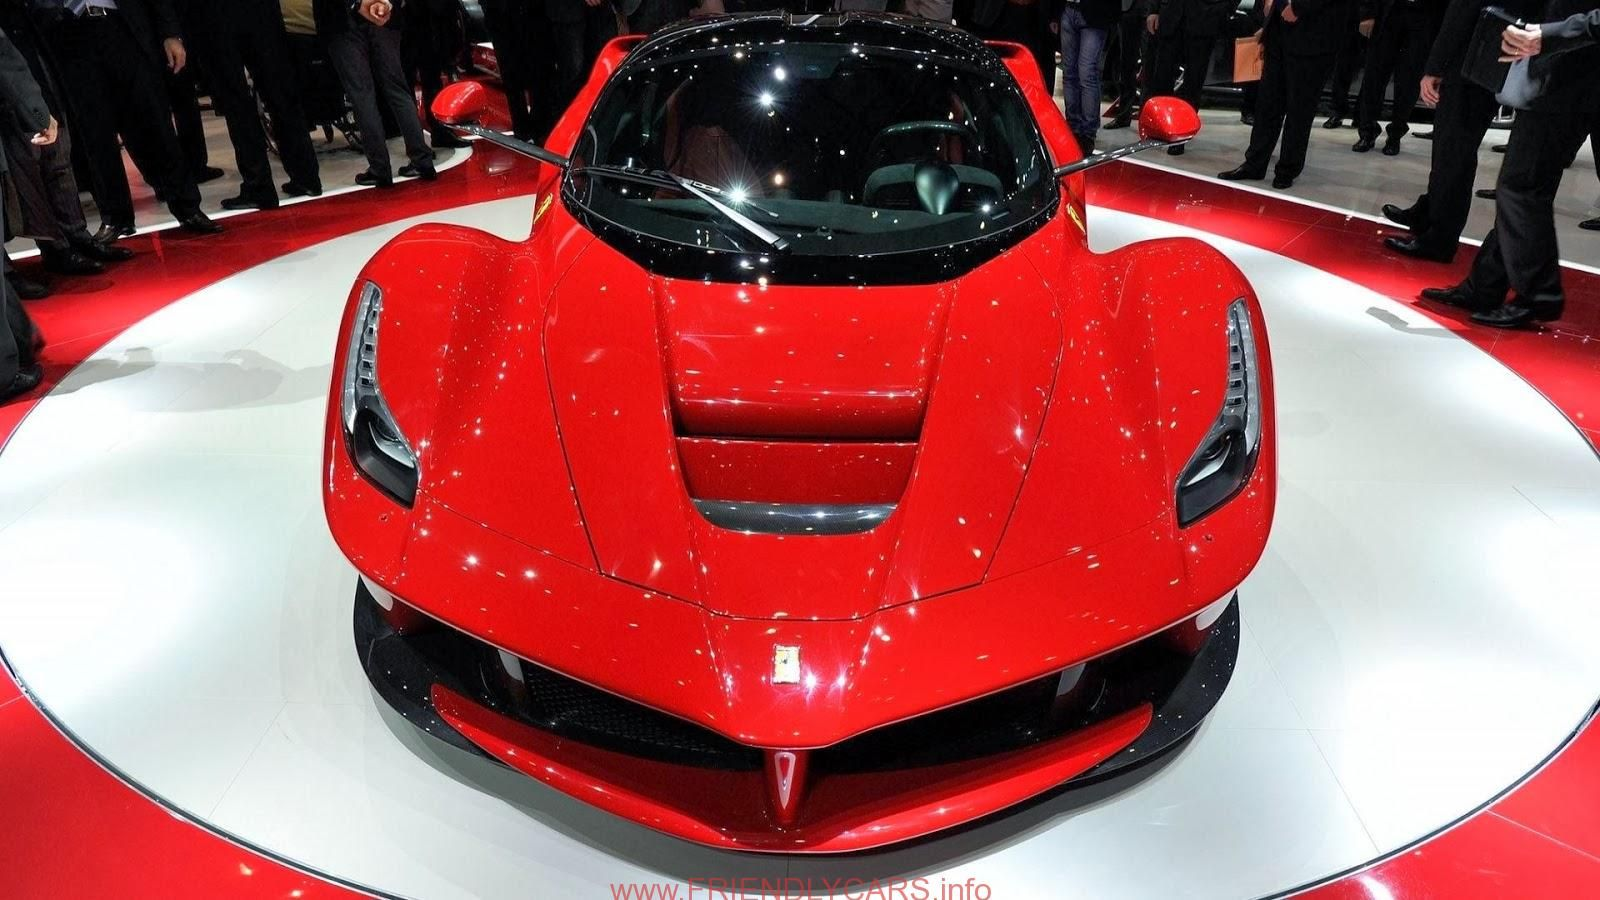 Cool ferrari 2014 models car images hd 2014 ferrari laferrari gallery stills images